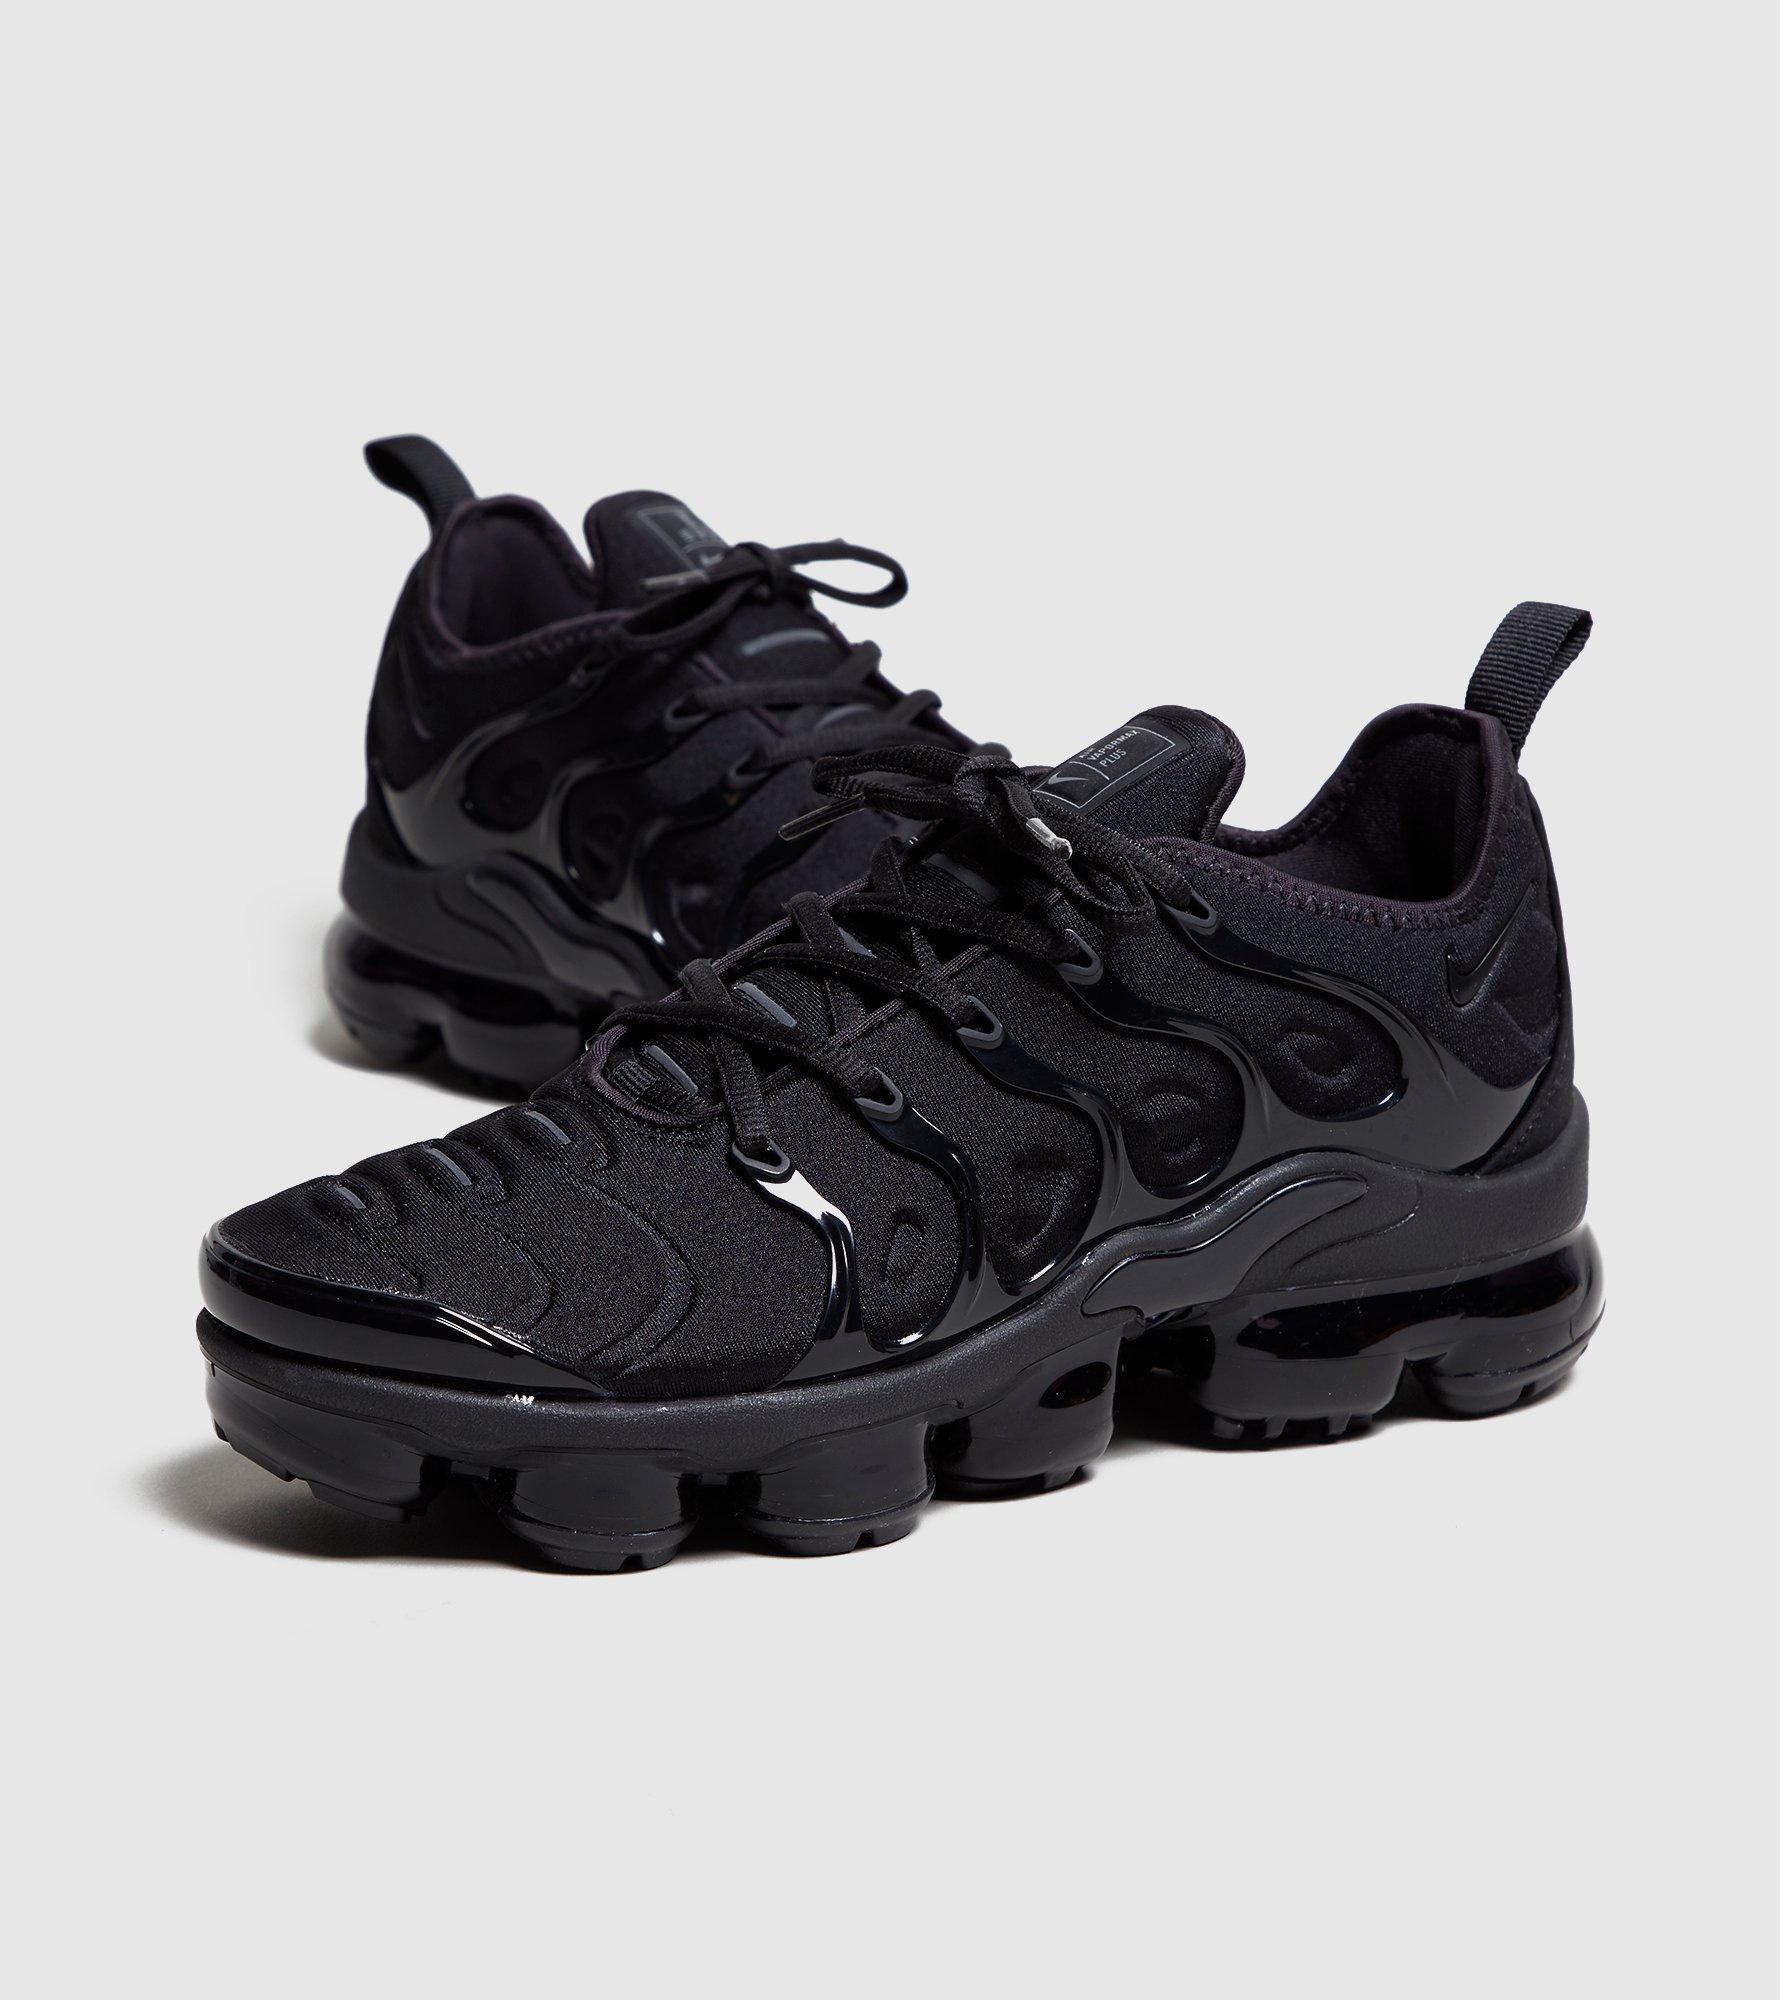 c7e1a885bf2 ... coupon for nike air vapormax plus womens in black lyst ea5dc 1673d